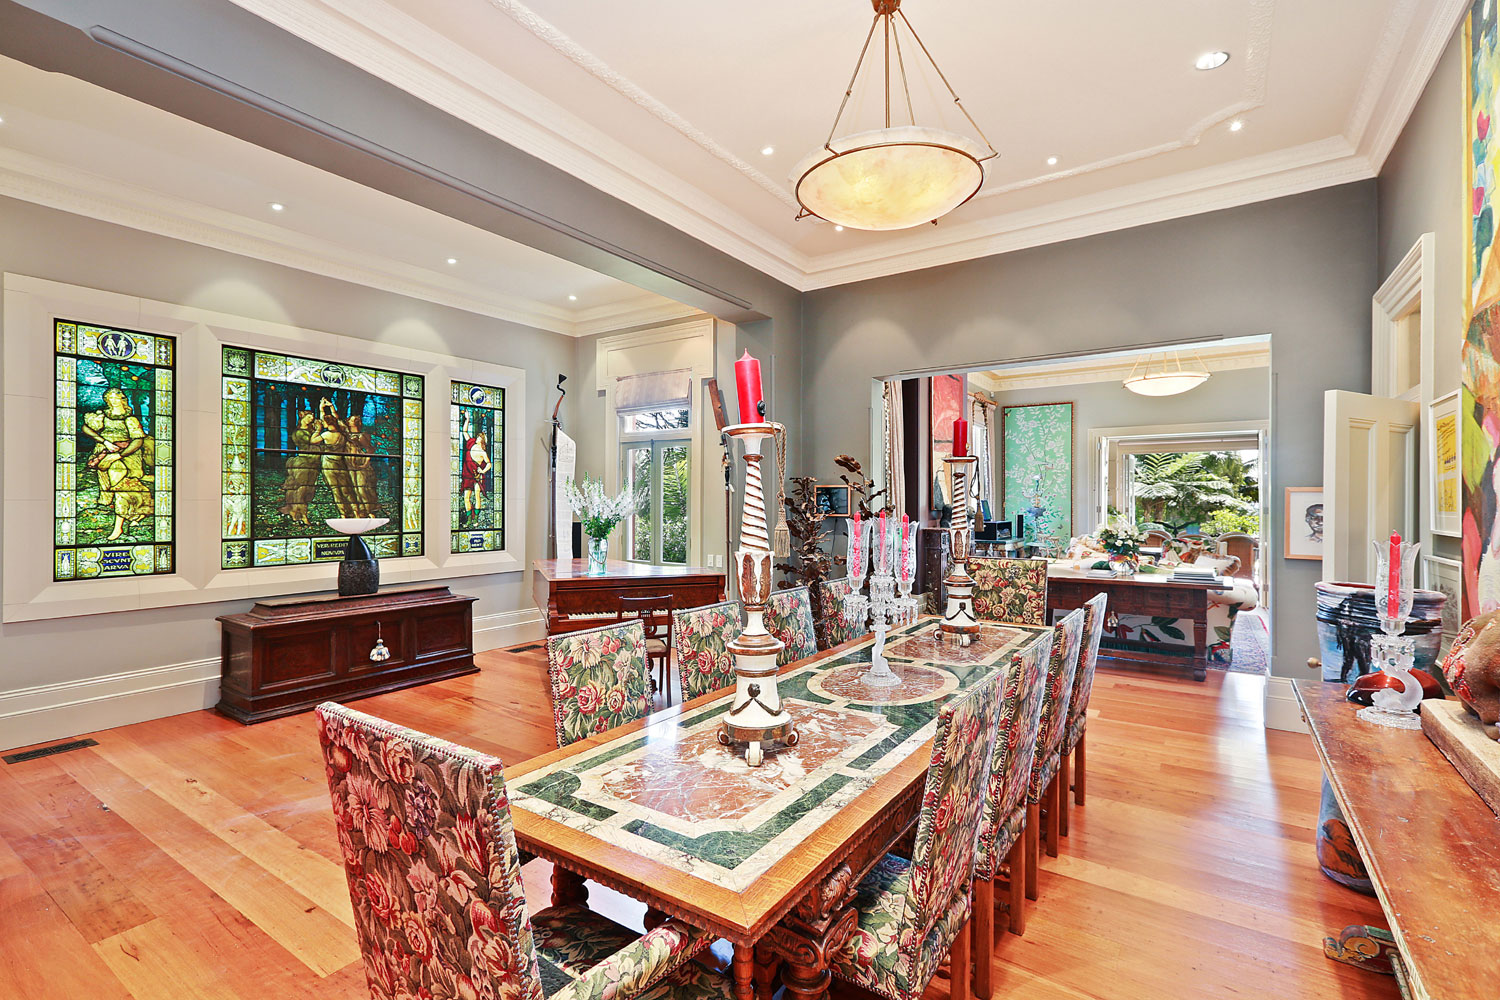 Berthong, the former Sydney estate of Russell Crowe, is grand in scale and design; the formal dining room is adorned with a magnificent stained glass window depicting classical iconography.